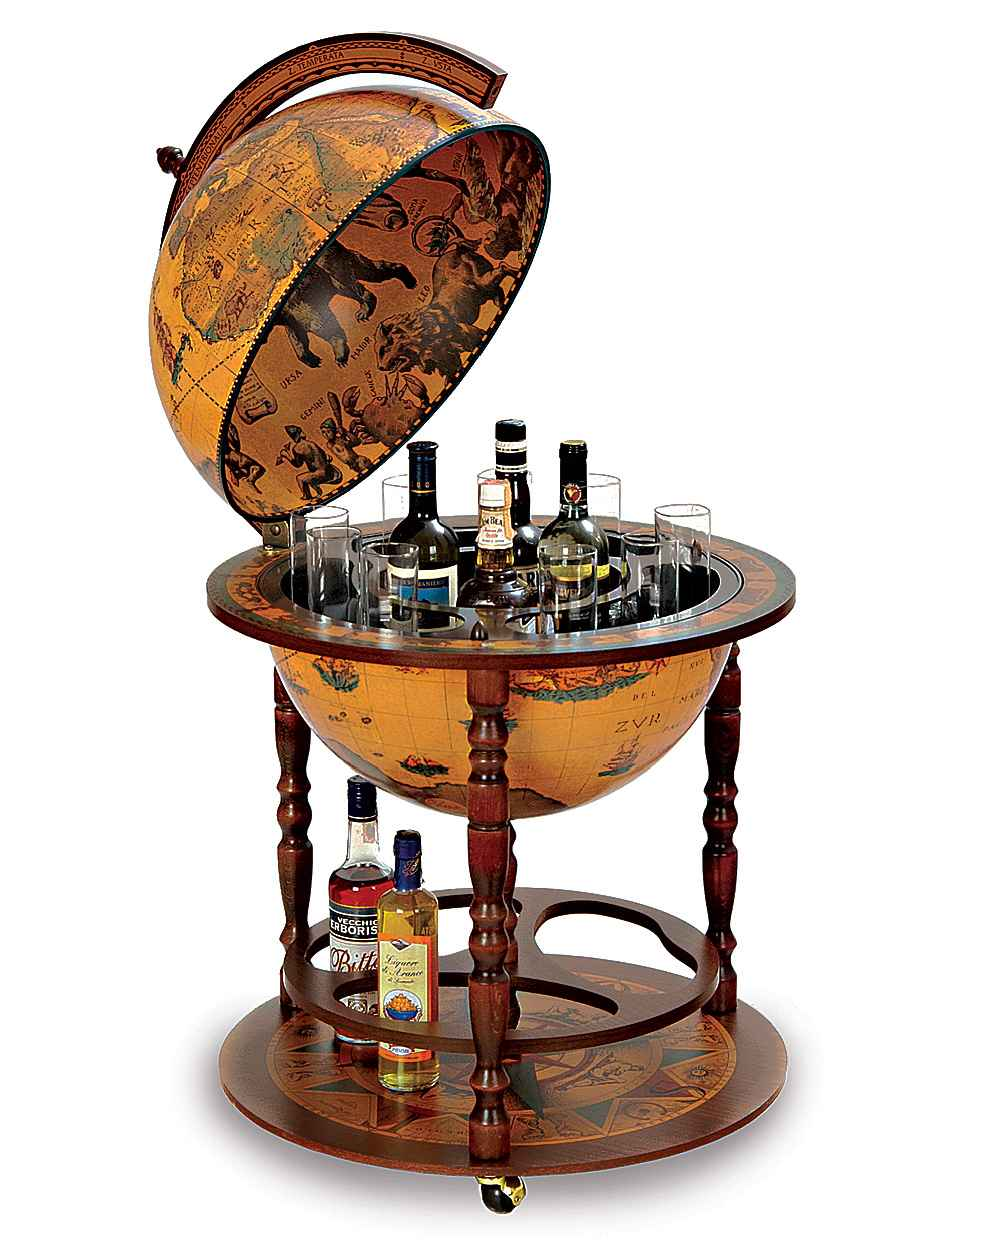 Diy How To Make A Globe Liquor Cabinet Plans Free